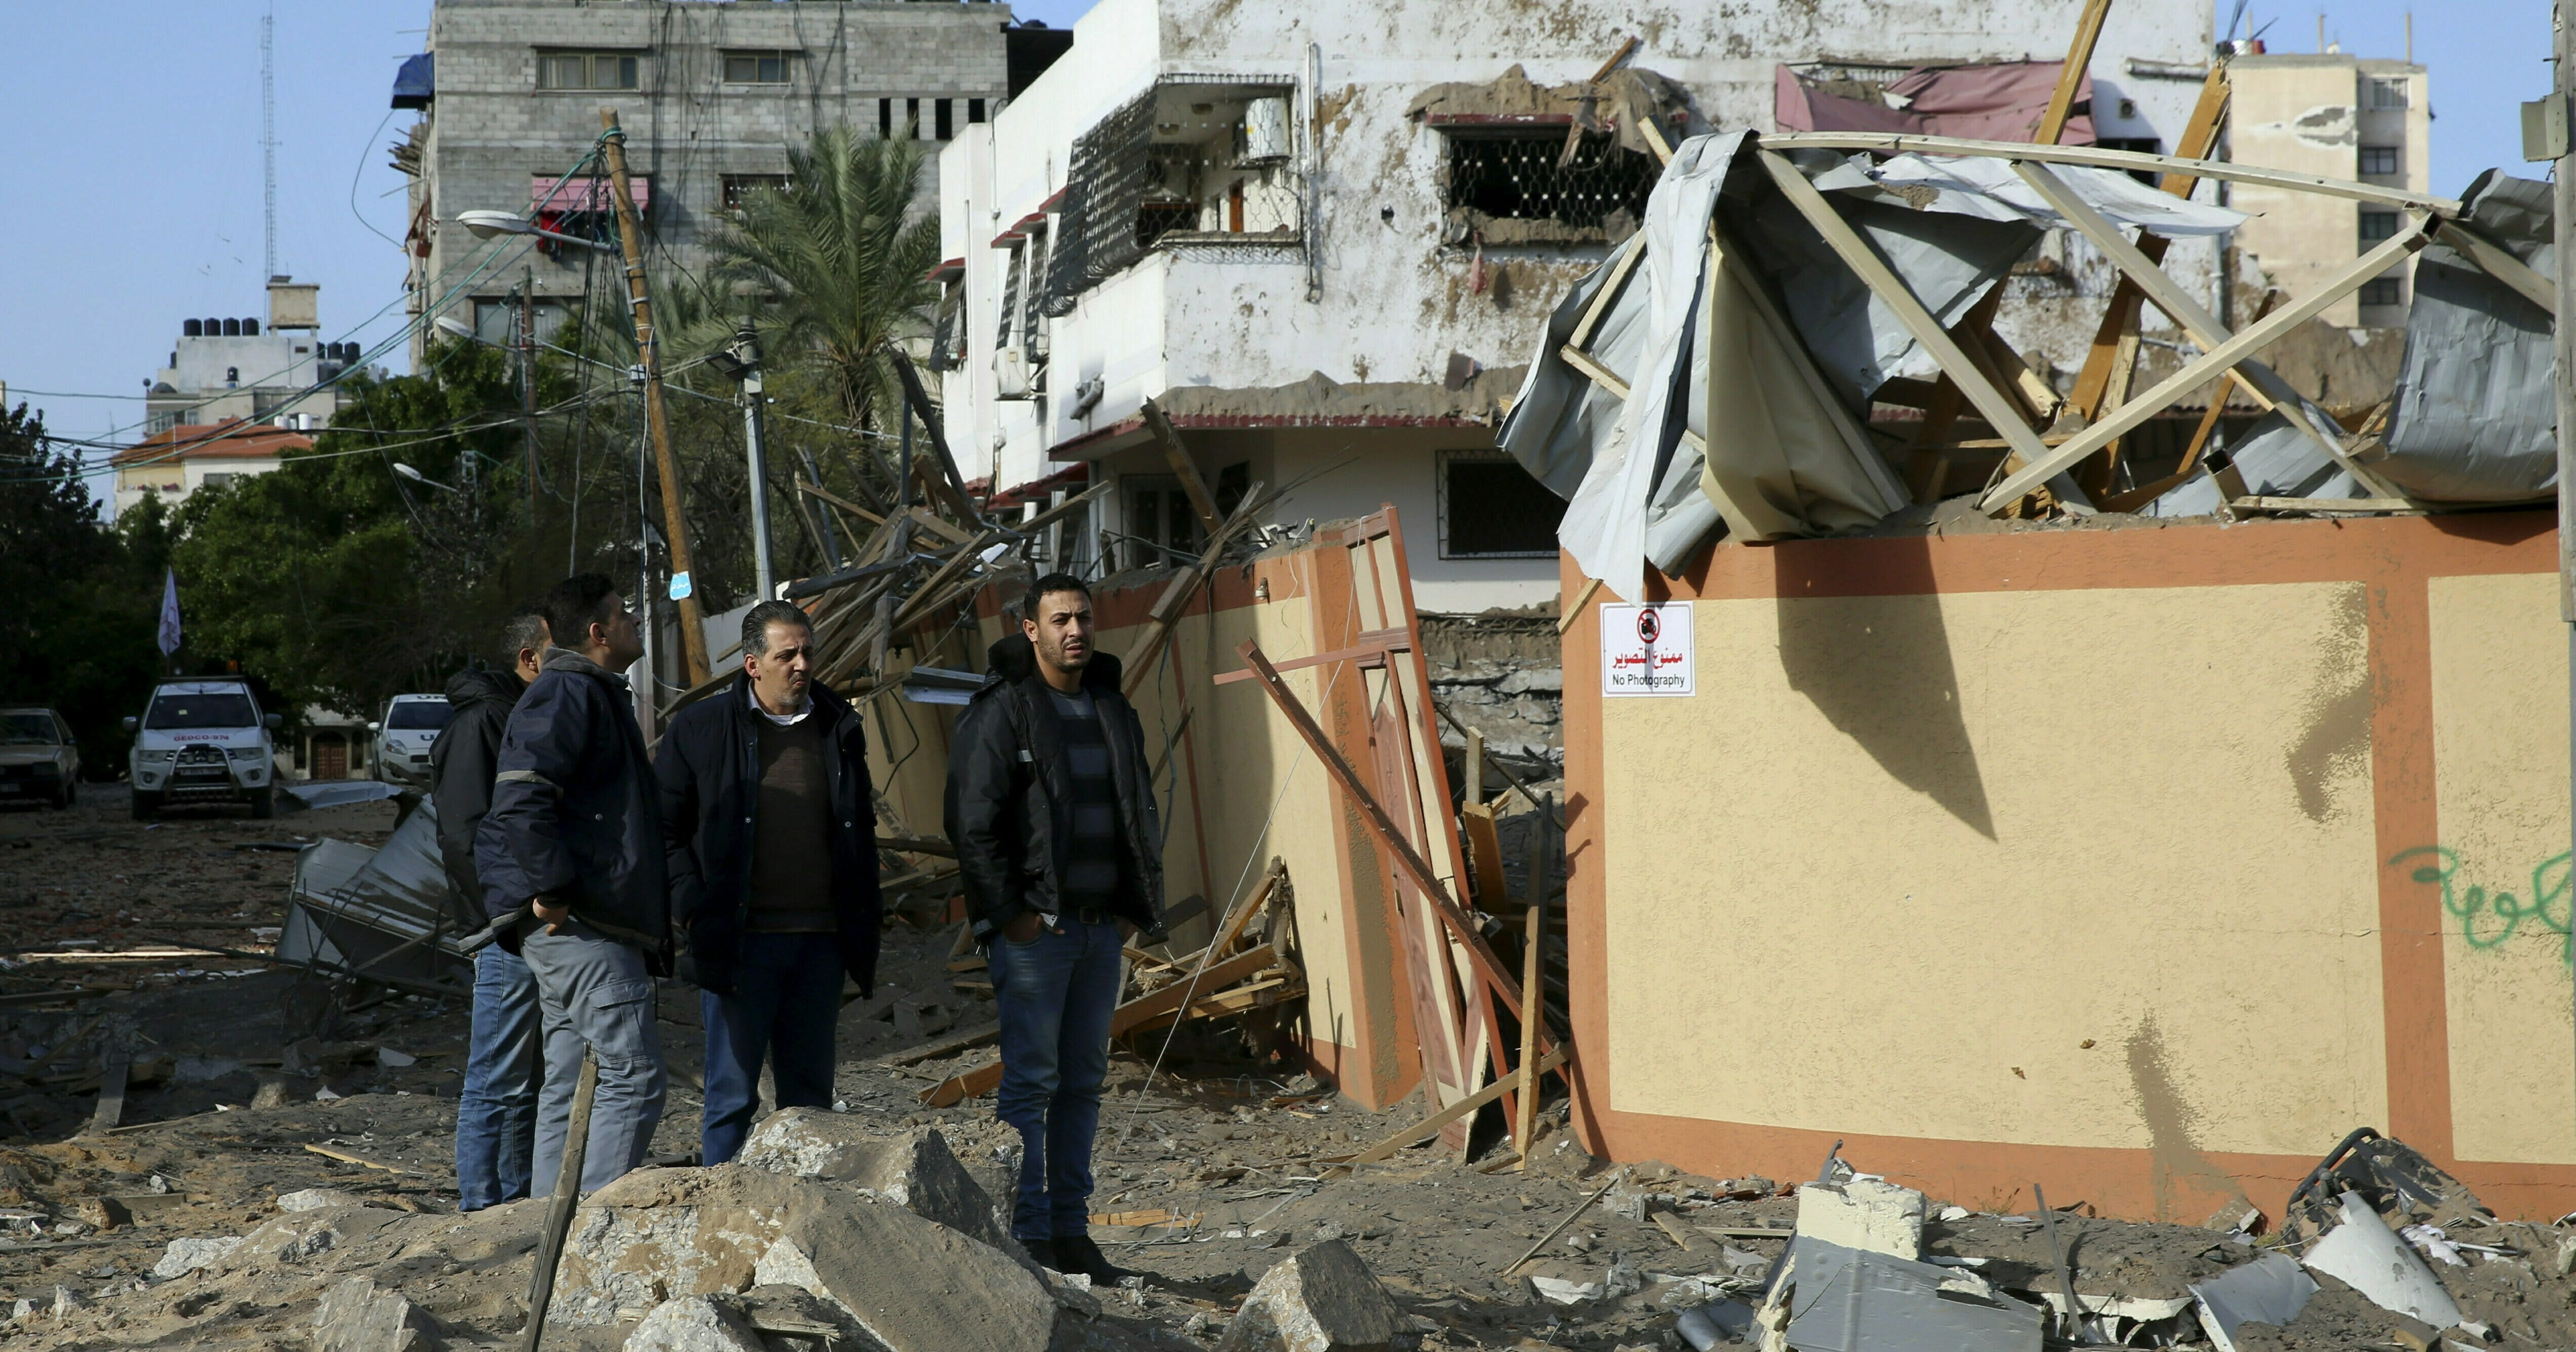 Palestinians inspect the damage of the offices of Hamas leader Ismail Haniyeh, in Gaza City, Tuesday, March 26, 2019.